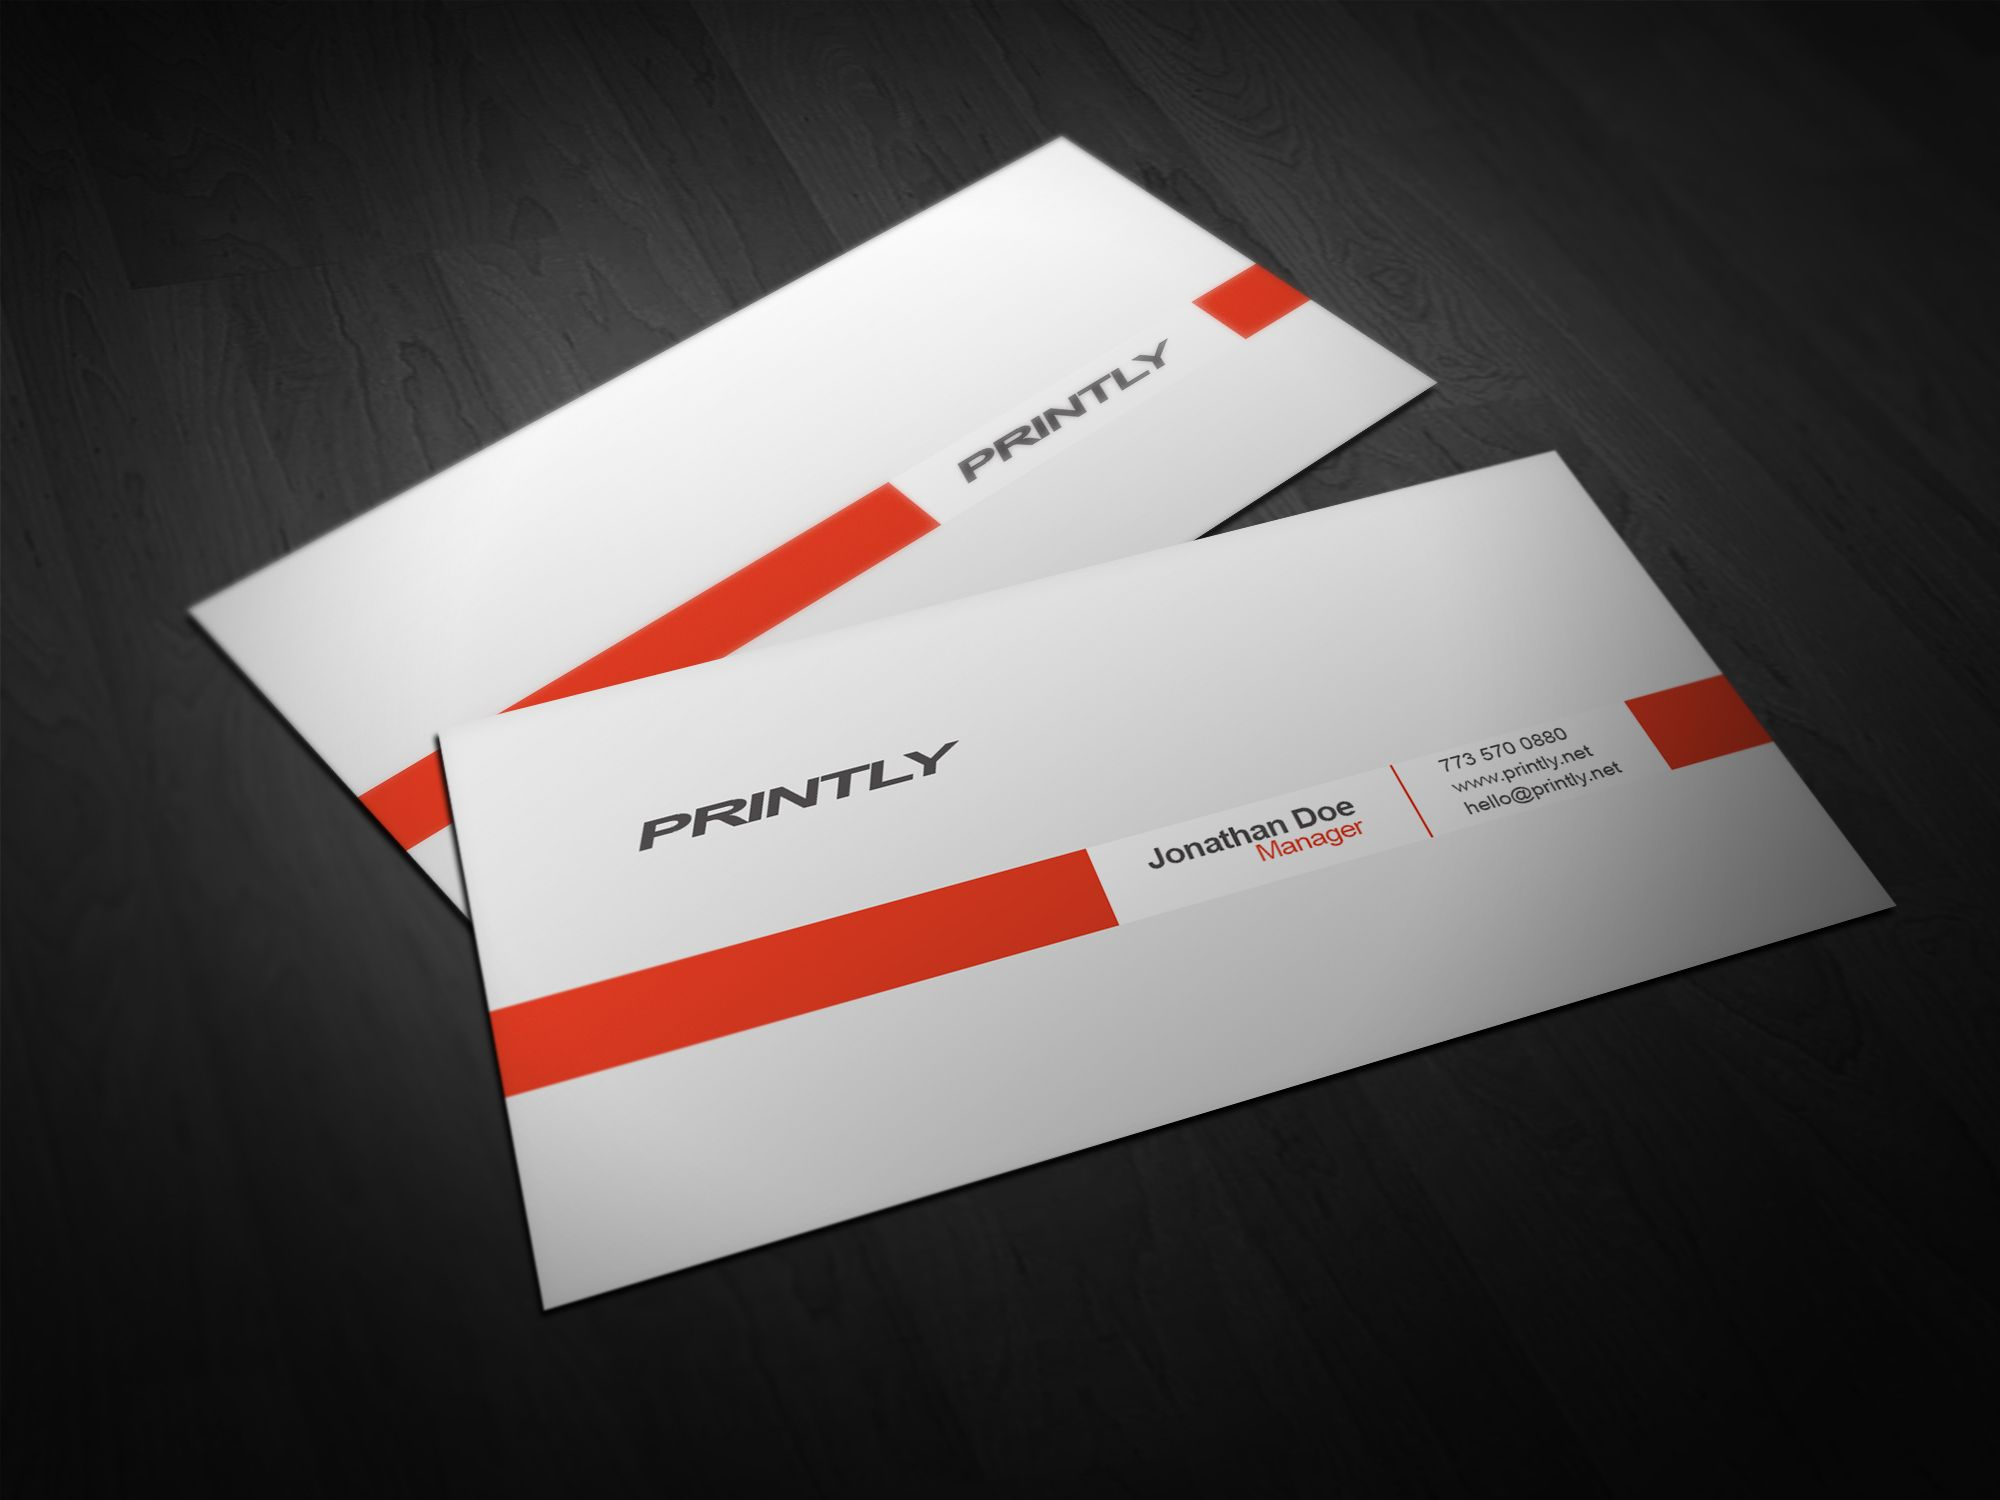 Free printly psd business card template printly design free printable business cards templates by printly flashek